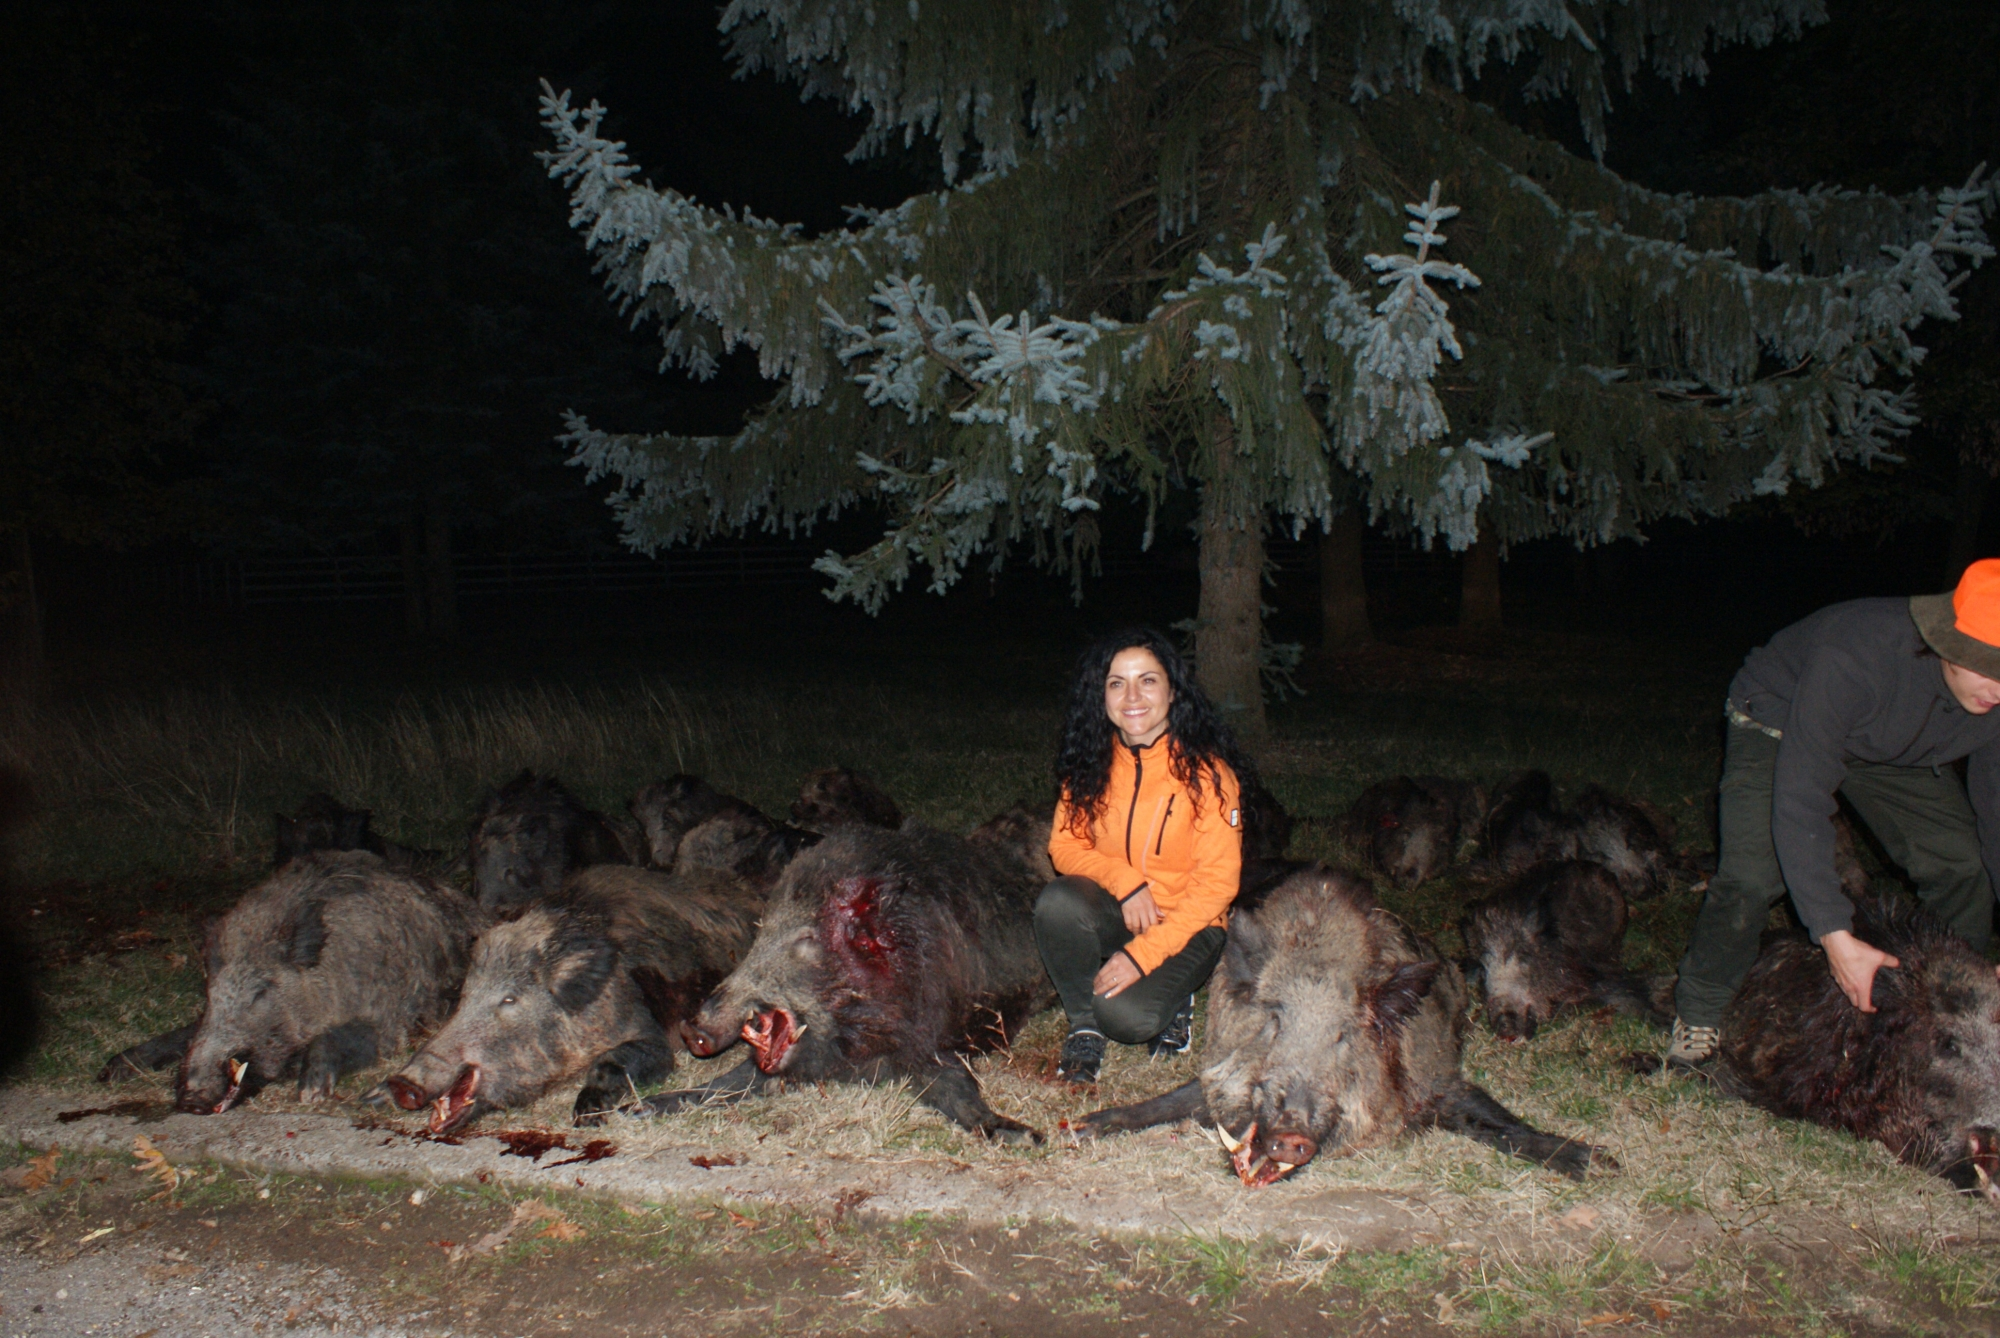 Hunting For Wild Boar in Europe